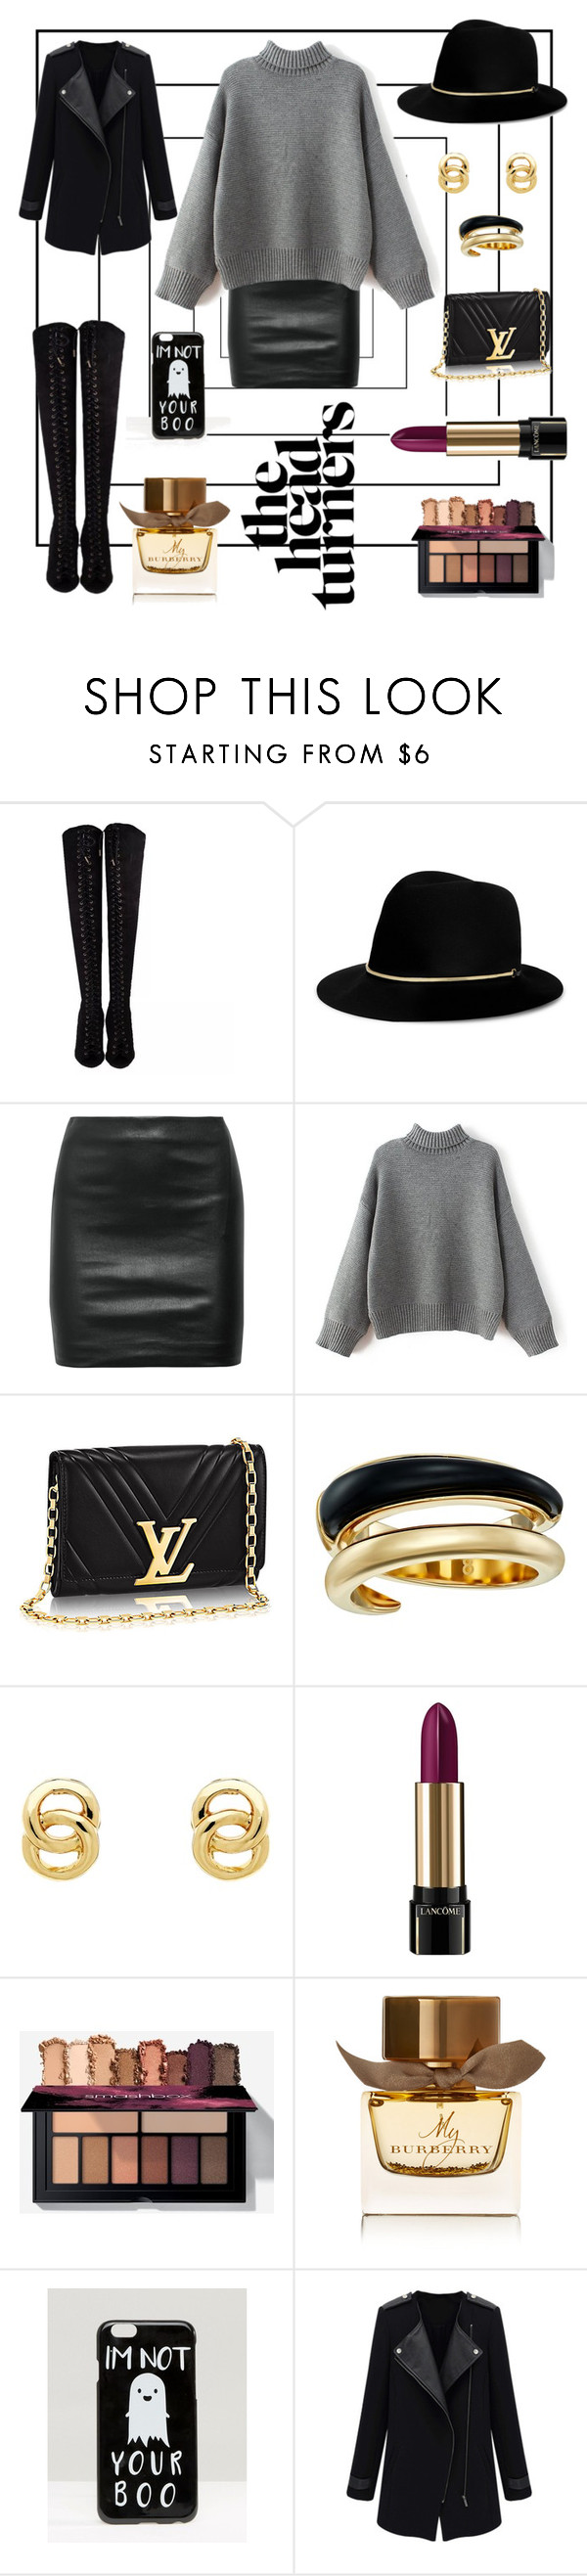 """""""did i"""" by laluna7 ❤ liked on Polyvore featuring Janessa Leone, The Row, Michael Kors, Monet, Lancôme, Burberry and ASOS"""